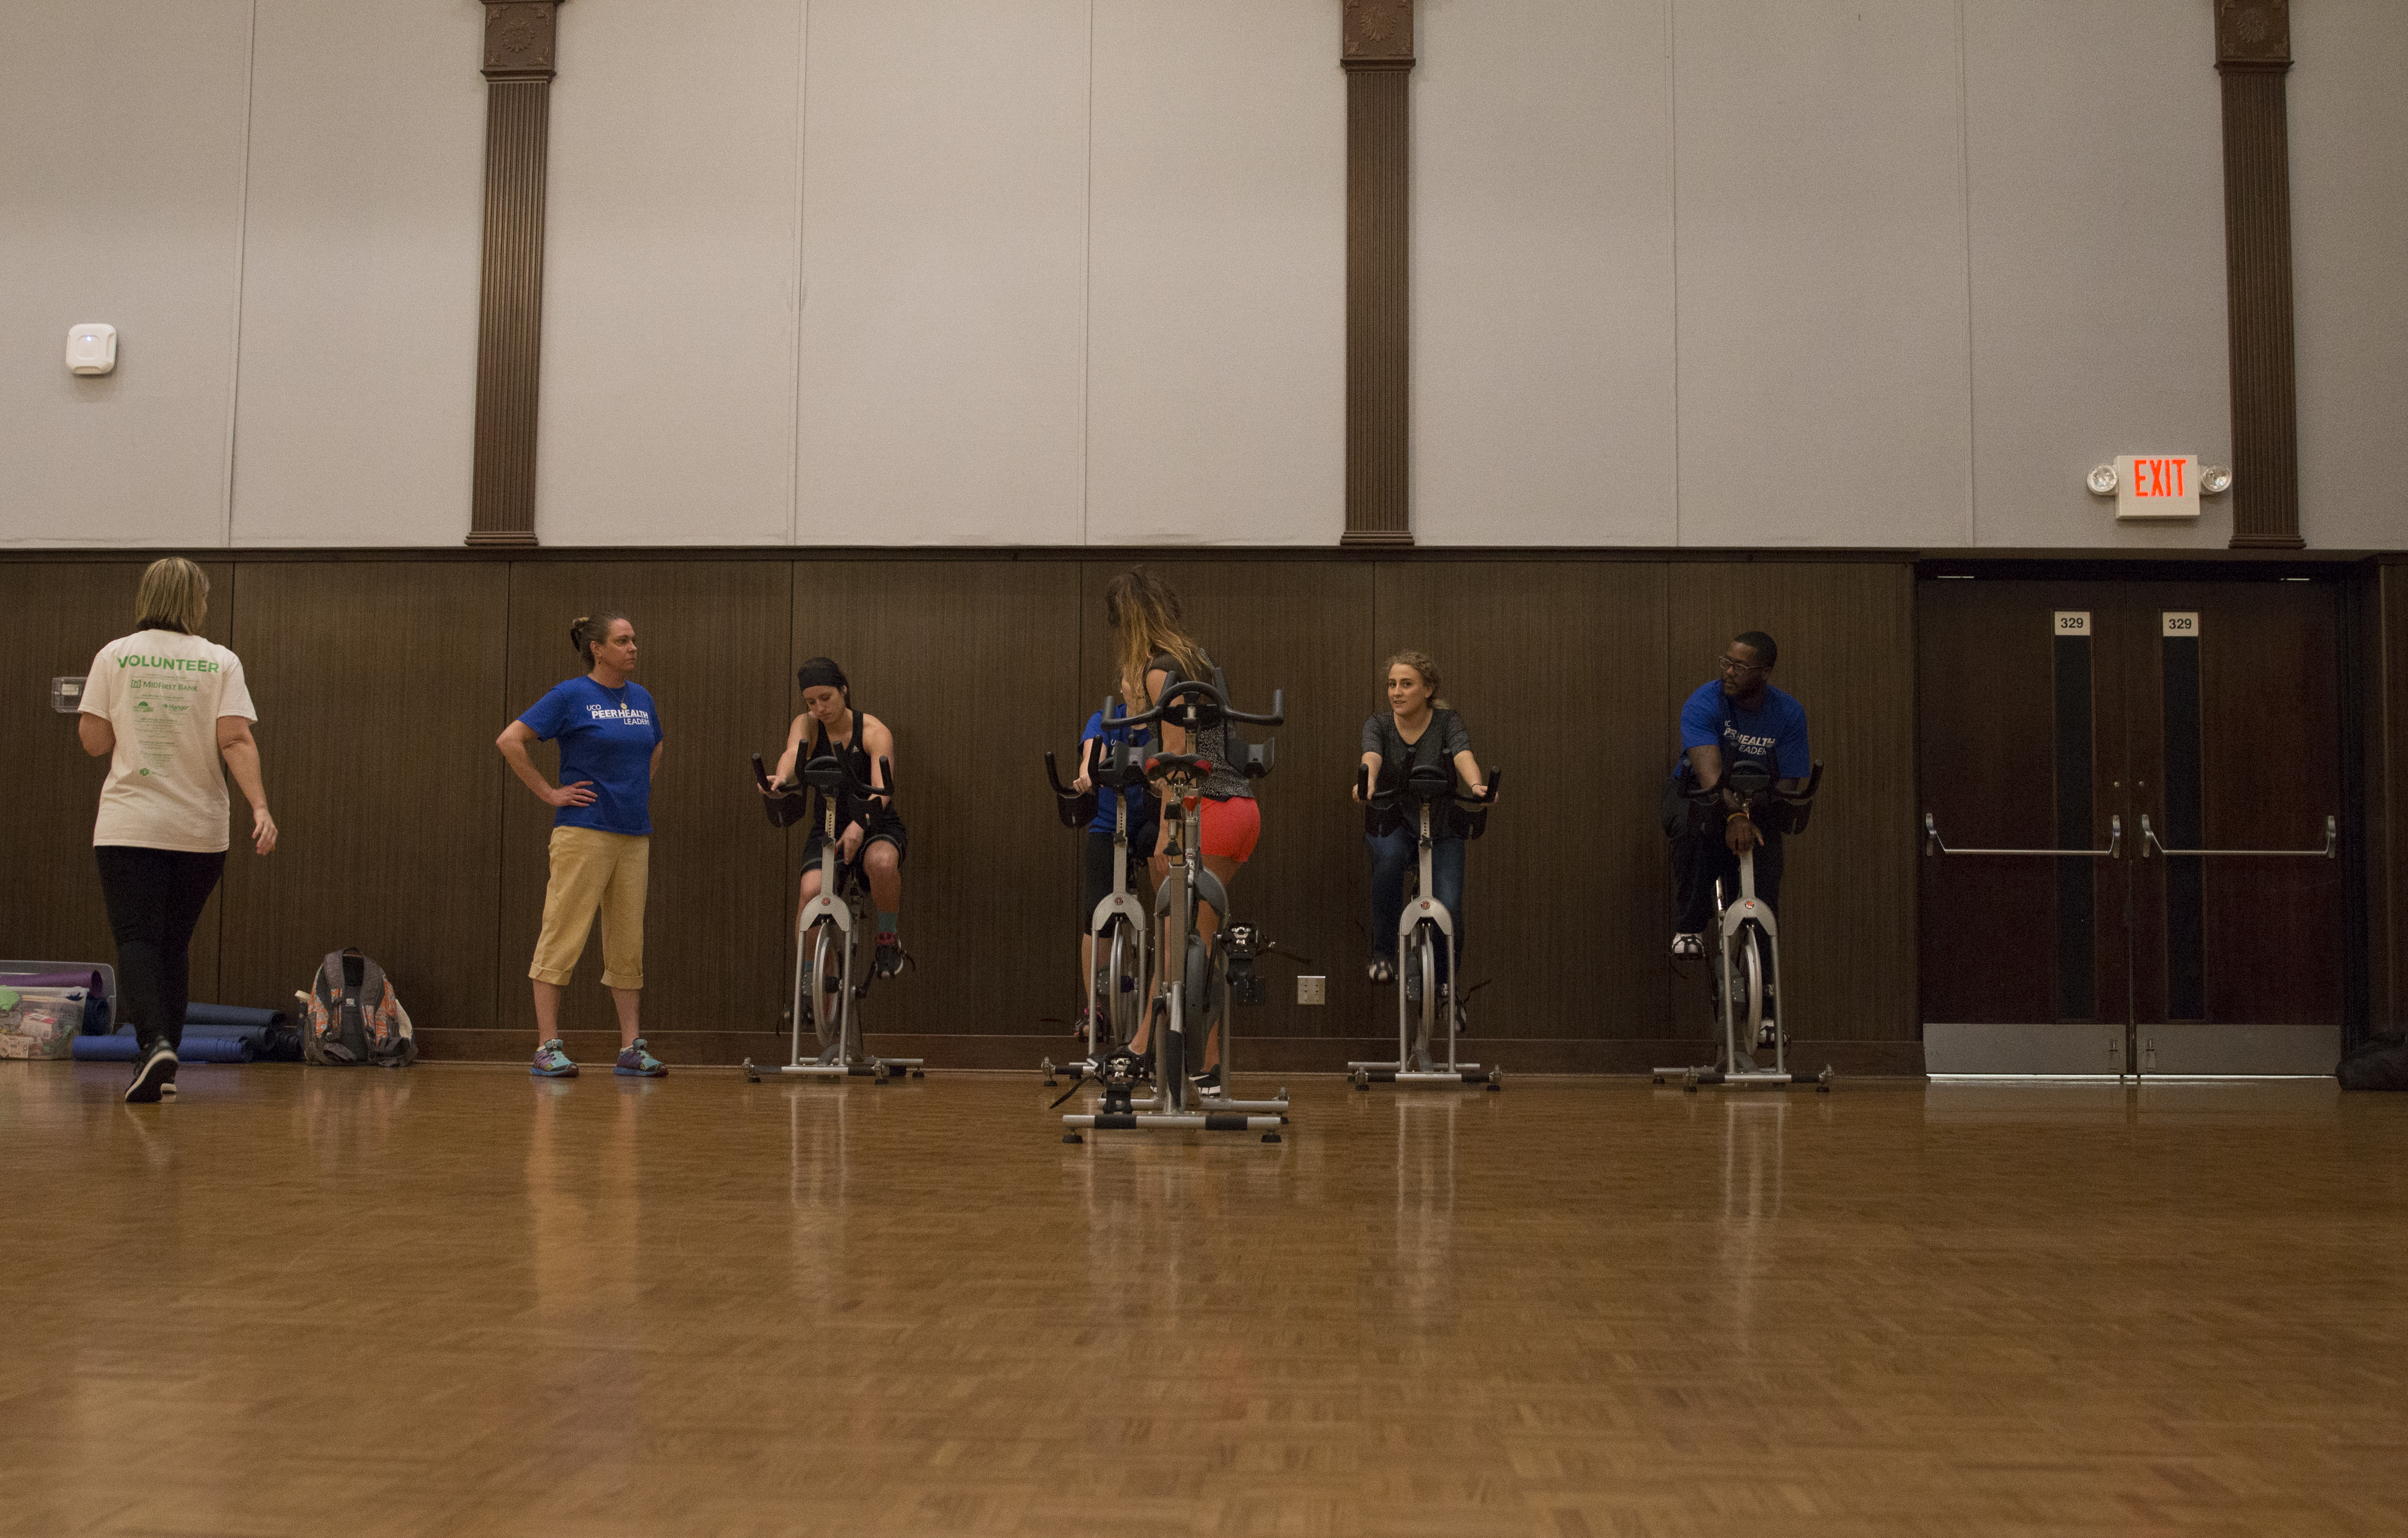 Campus Event Promotes Health and Wellness